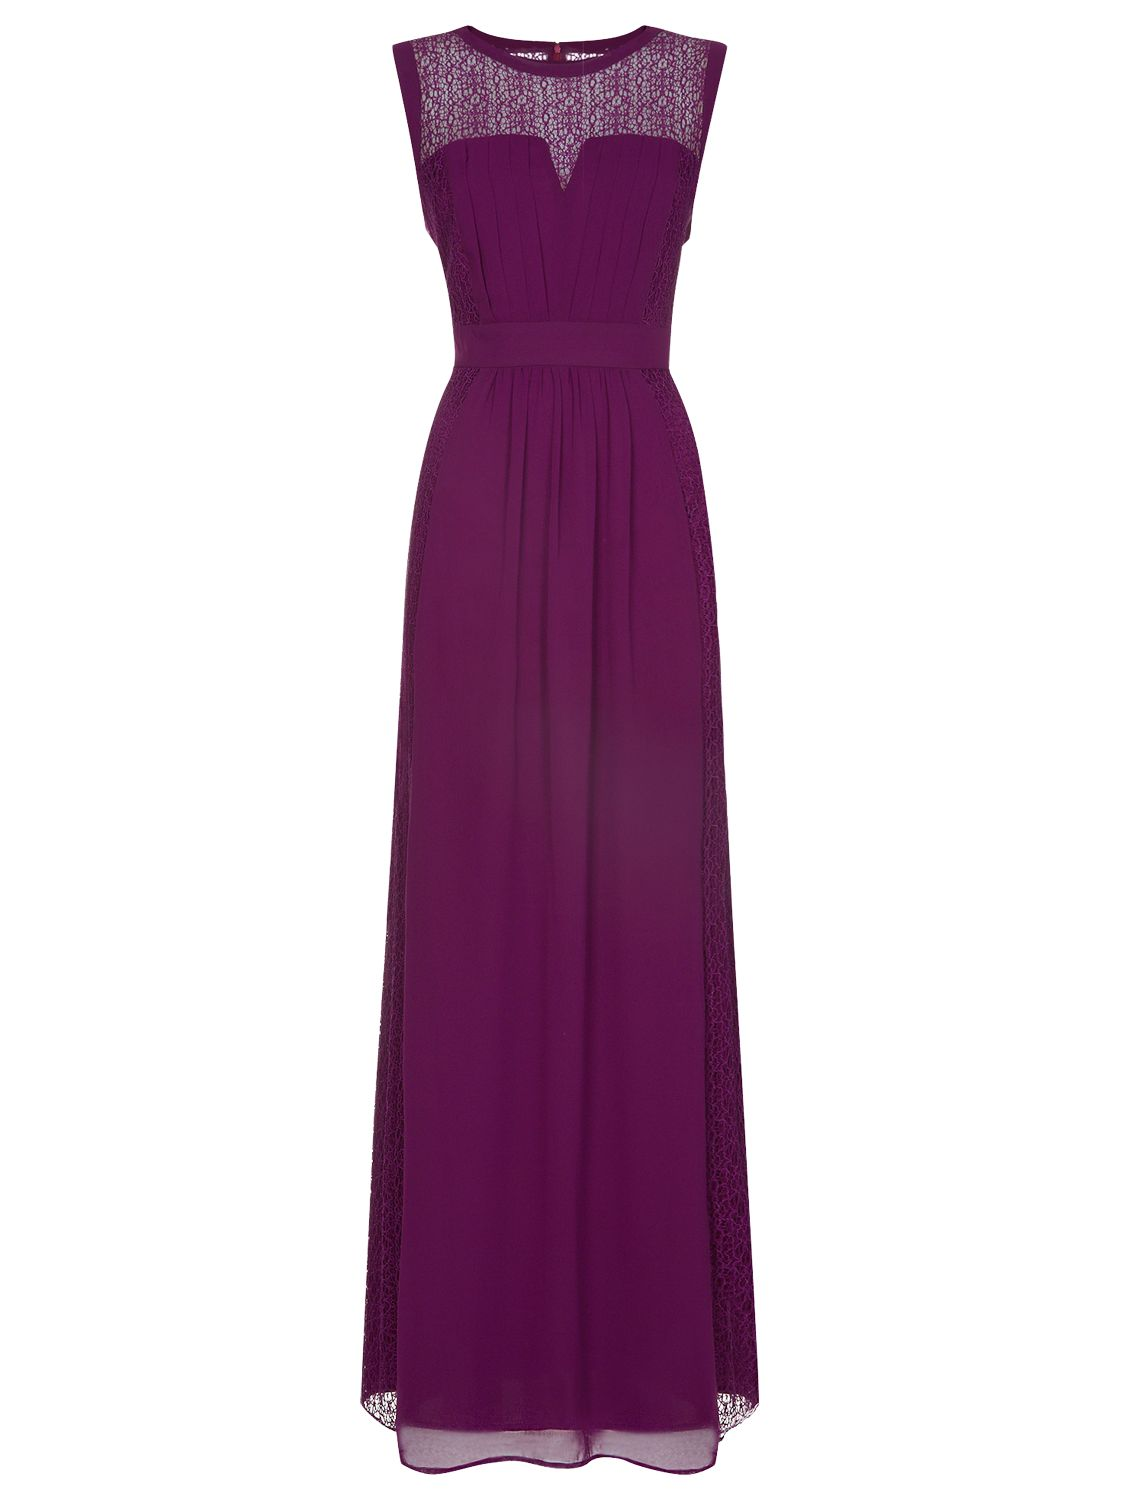 planet lace maxi dress purple wine, planet, lace, maxi, dress, purple, wine, 8|20|10|12|14|18, clearance, womenswear offers, womens dresses offers, new years party offers, women, plus size, party outfits, lace dress, inactive womenswear, new reductions, womens dresses, evening gowns, special offers, eveningwear offers, 1705348